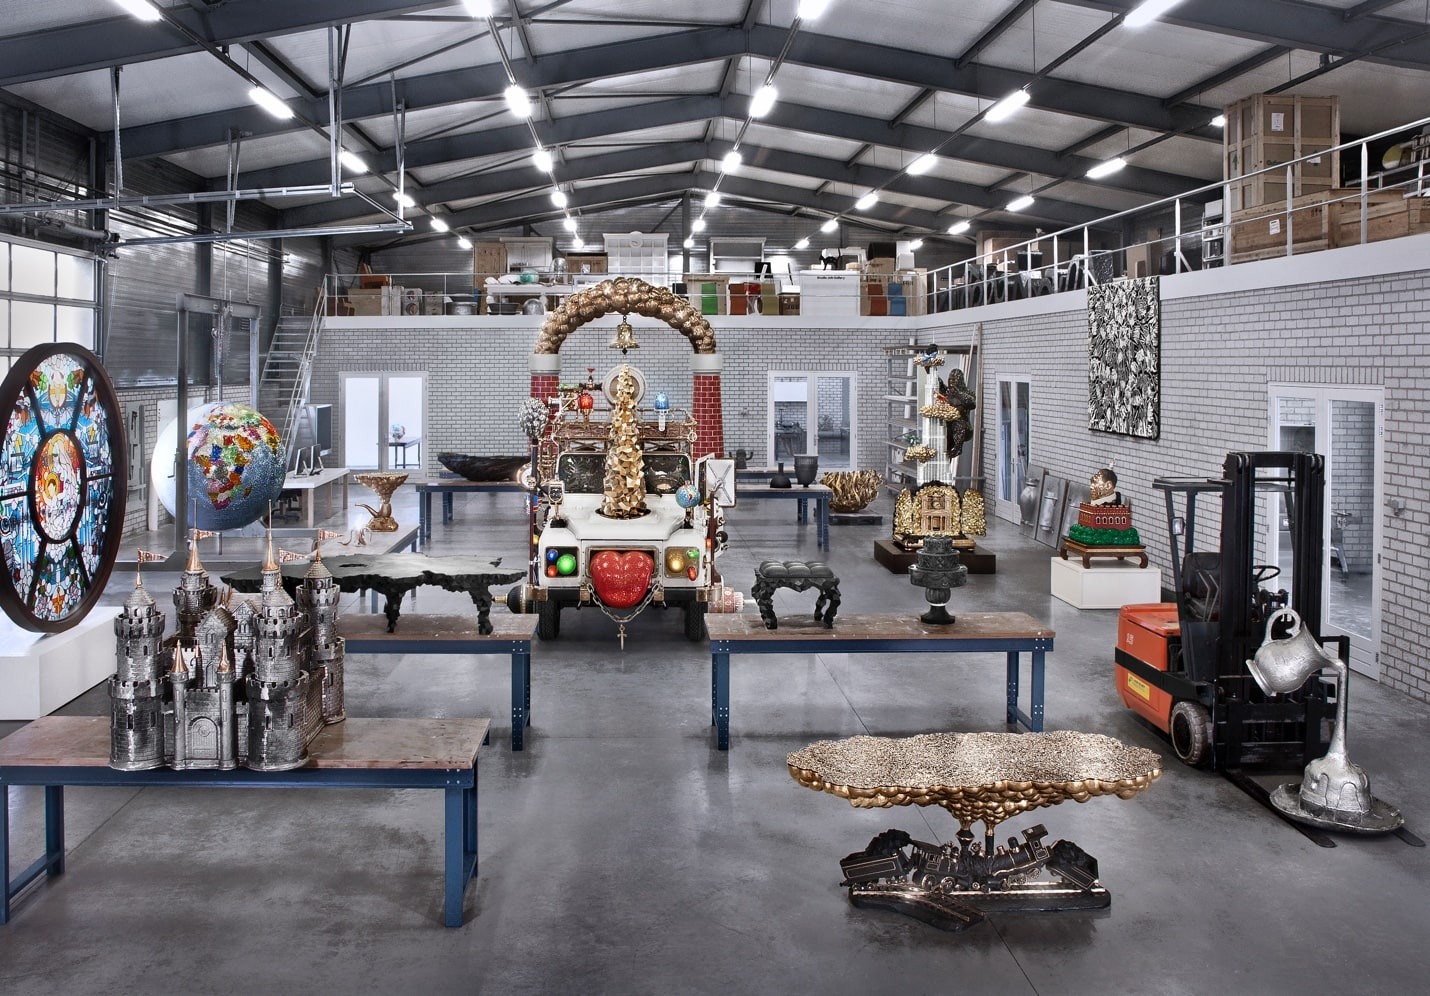 2015-Studio-Job-Atelier-overview-ph-Loek-Blonk